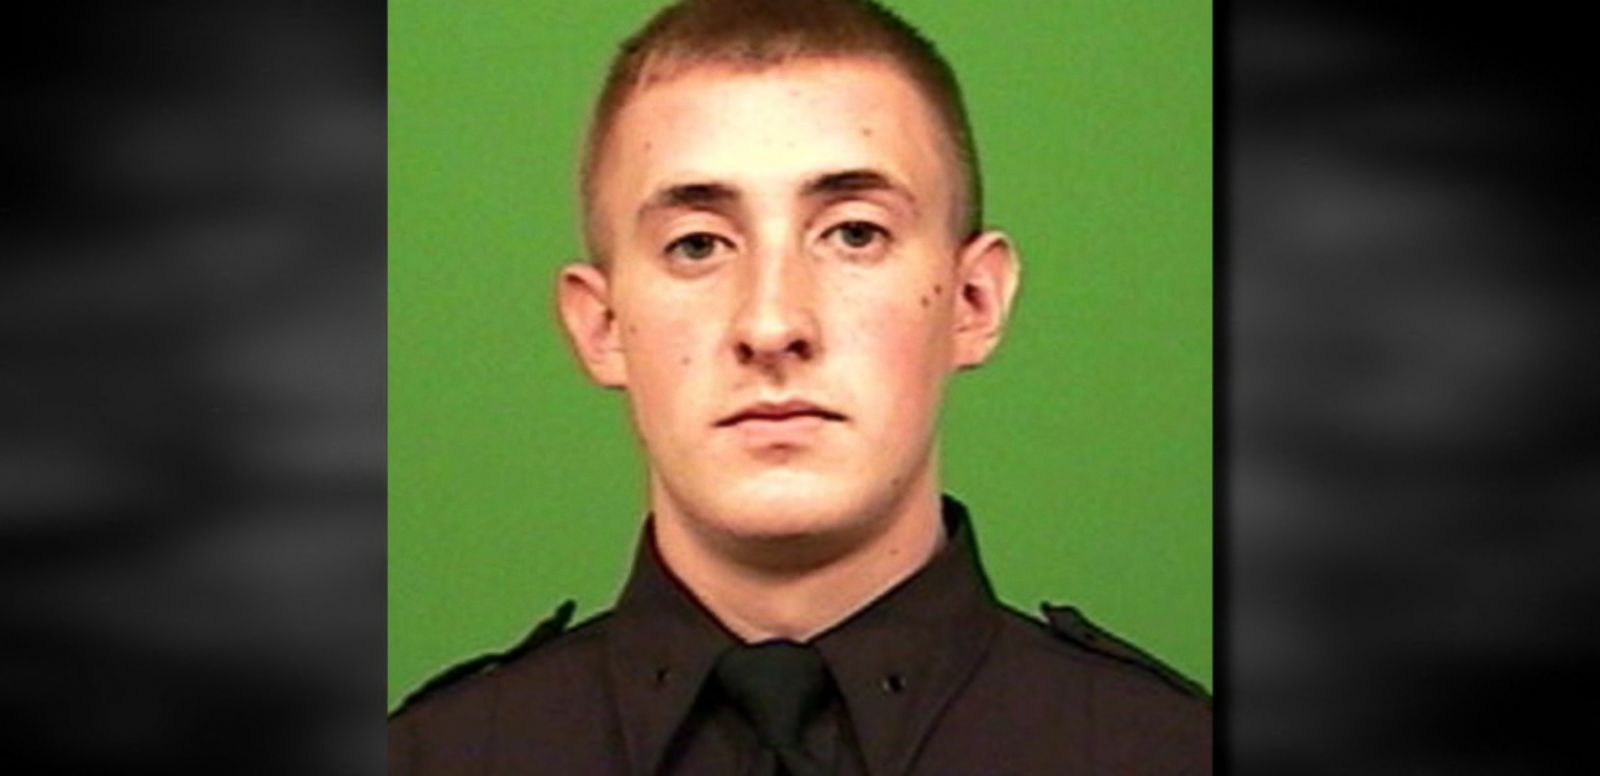 VIDEO: Brian Moore, 25, was on duty as part of a detail targeting illegal guns when he was shot.